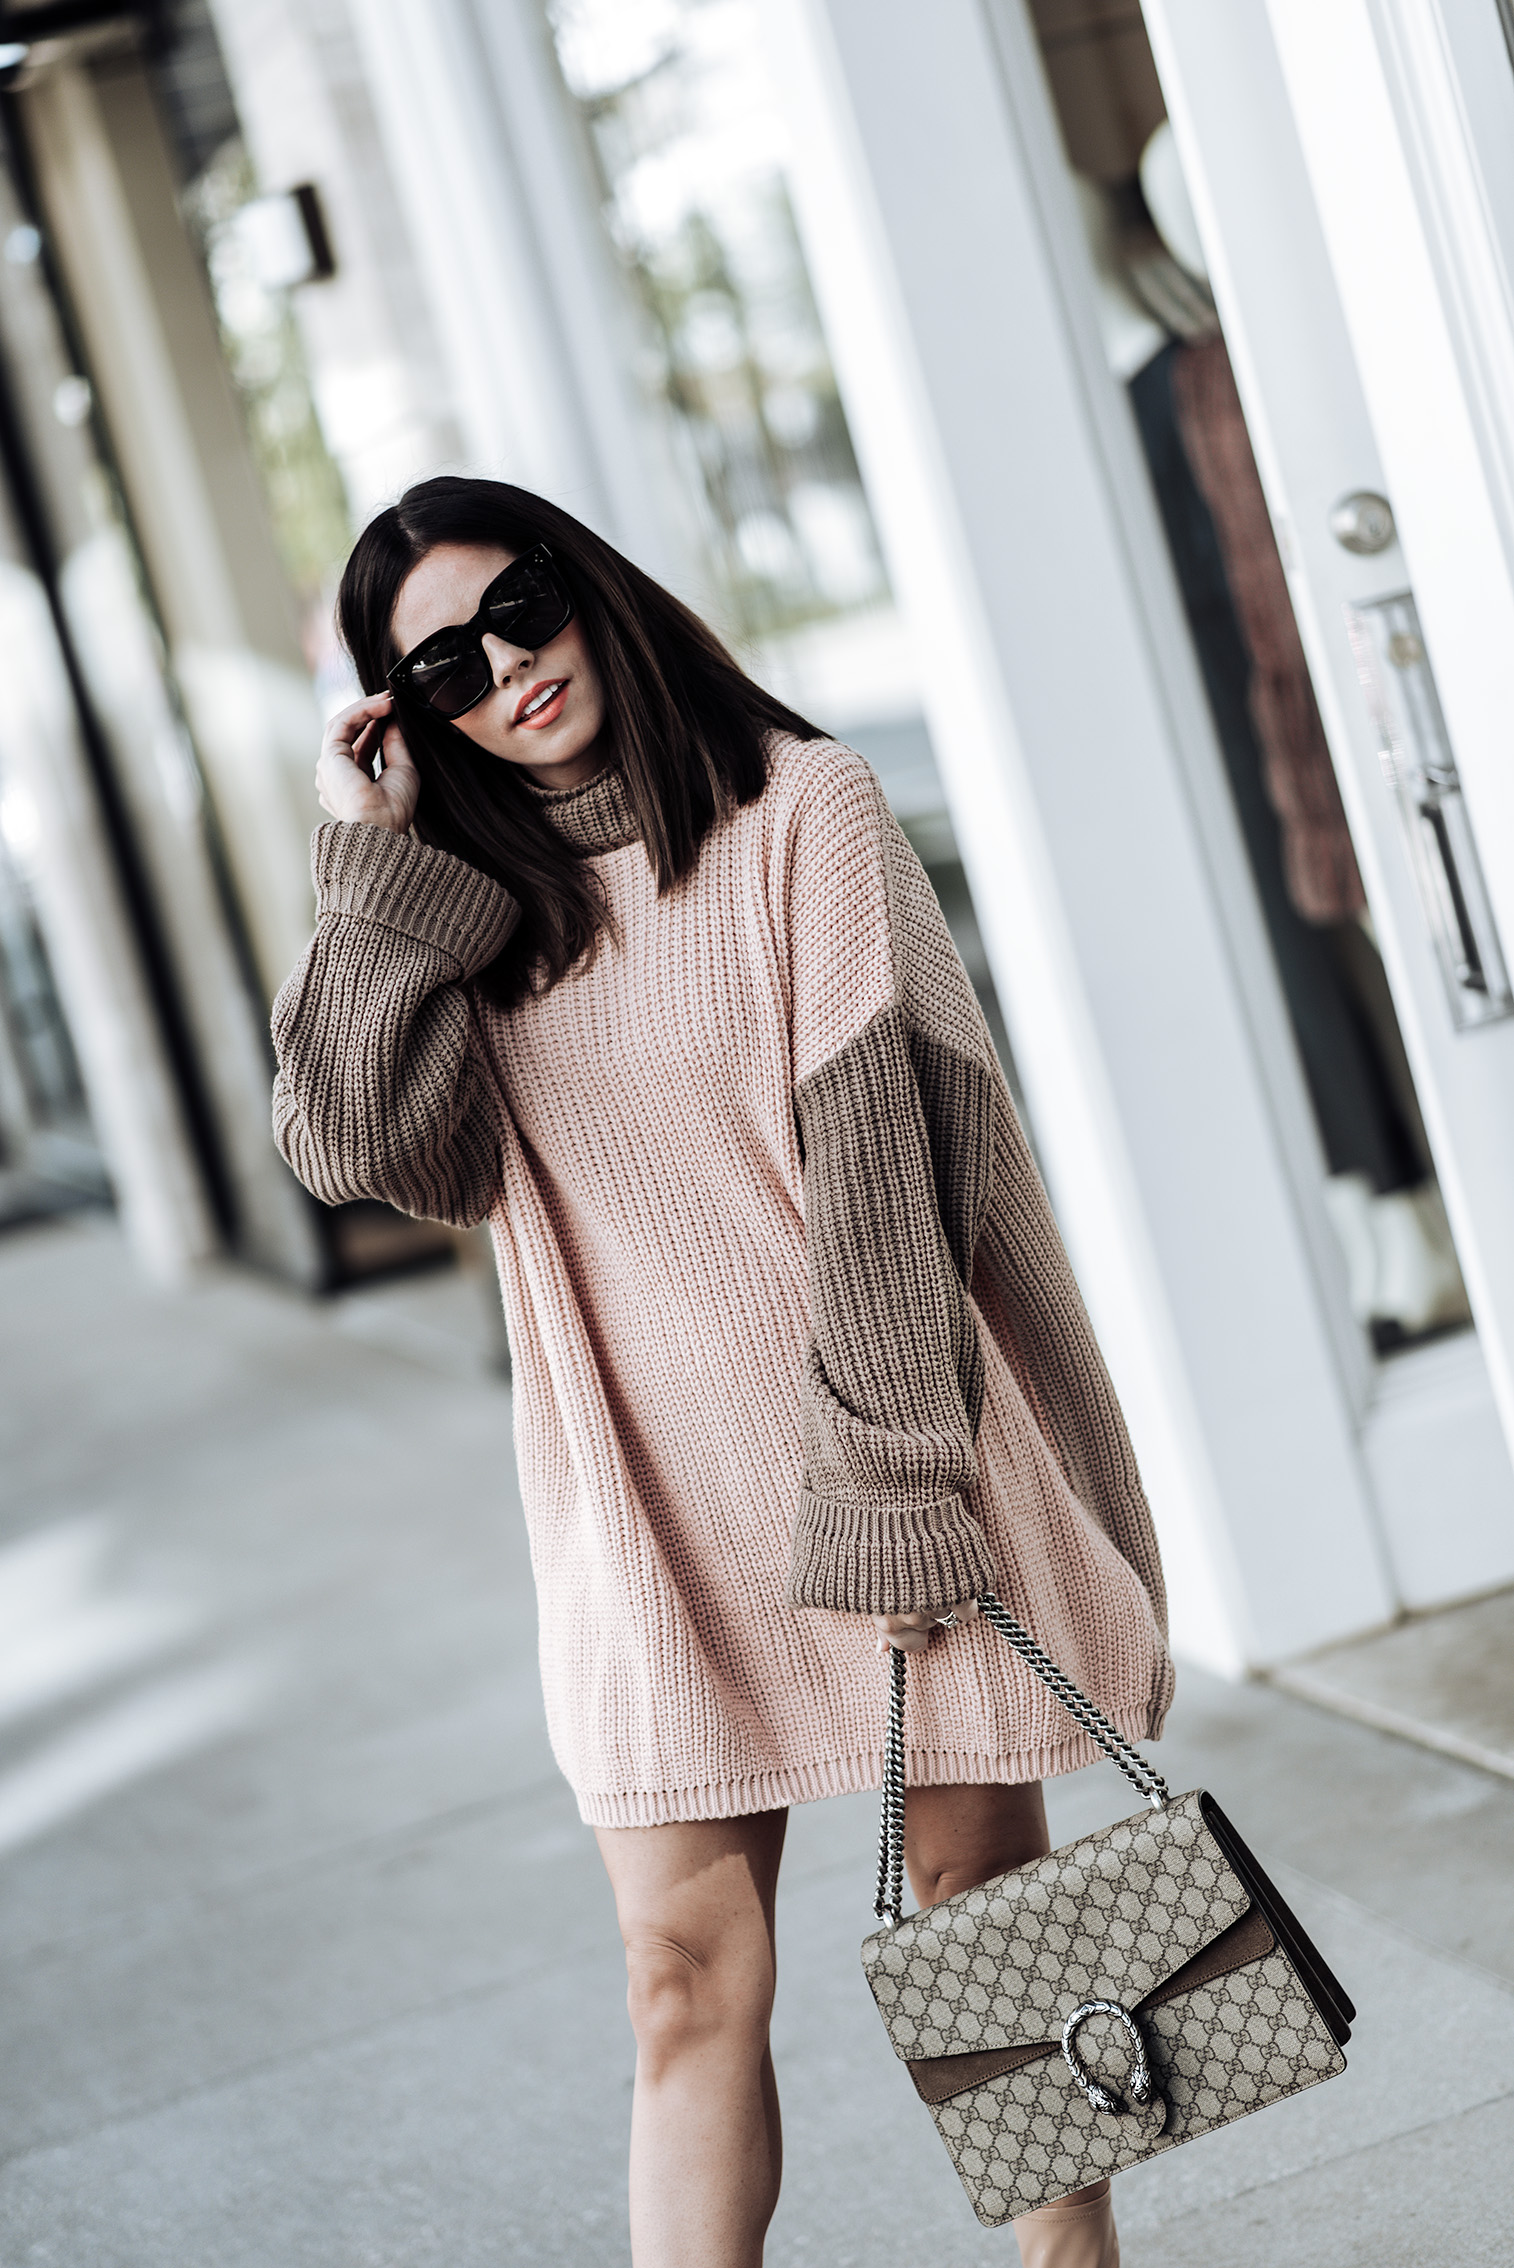 5 chunky knit sweater dresses for under 50 |Chunky knit sweater dress for under $50 (Nasty Gal) | Gucci Dionysus Bag |Tiffany Jais fashion and lifestyle blogger of Flaunt and Center | Houston fashion blogger | Straw handbag Trend | Streetstyle blog | #sweaterdress #streetstyle #ankleboots #guccidionysus